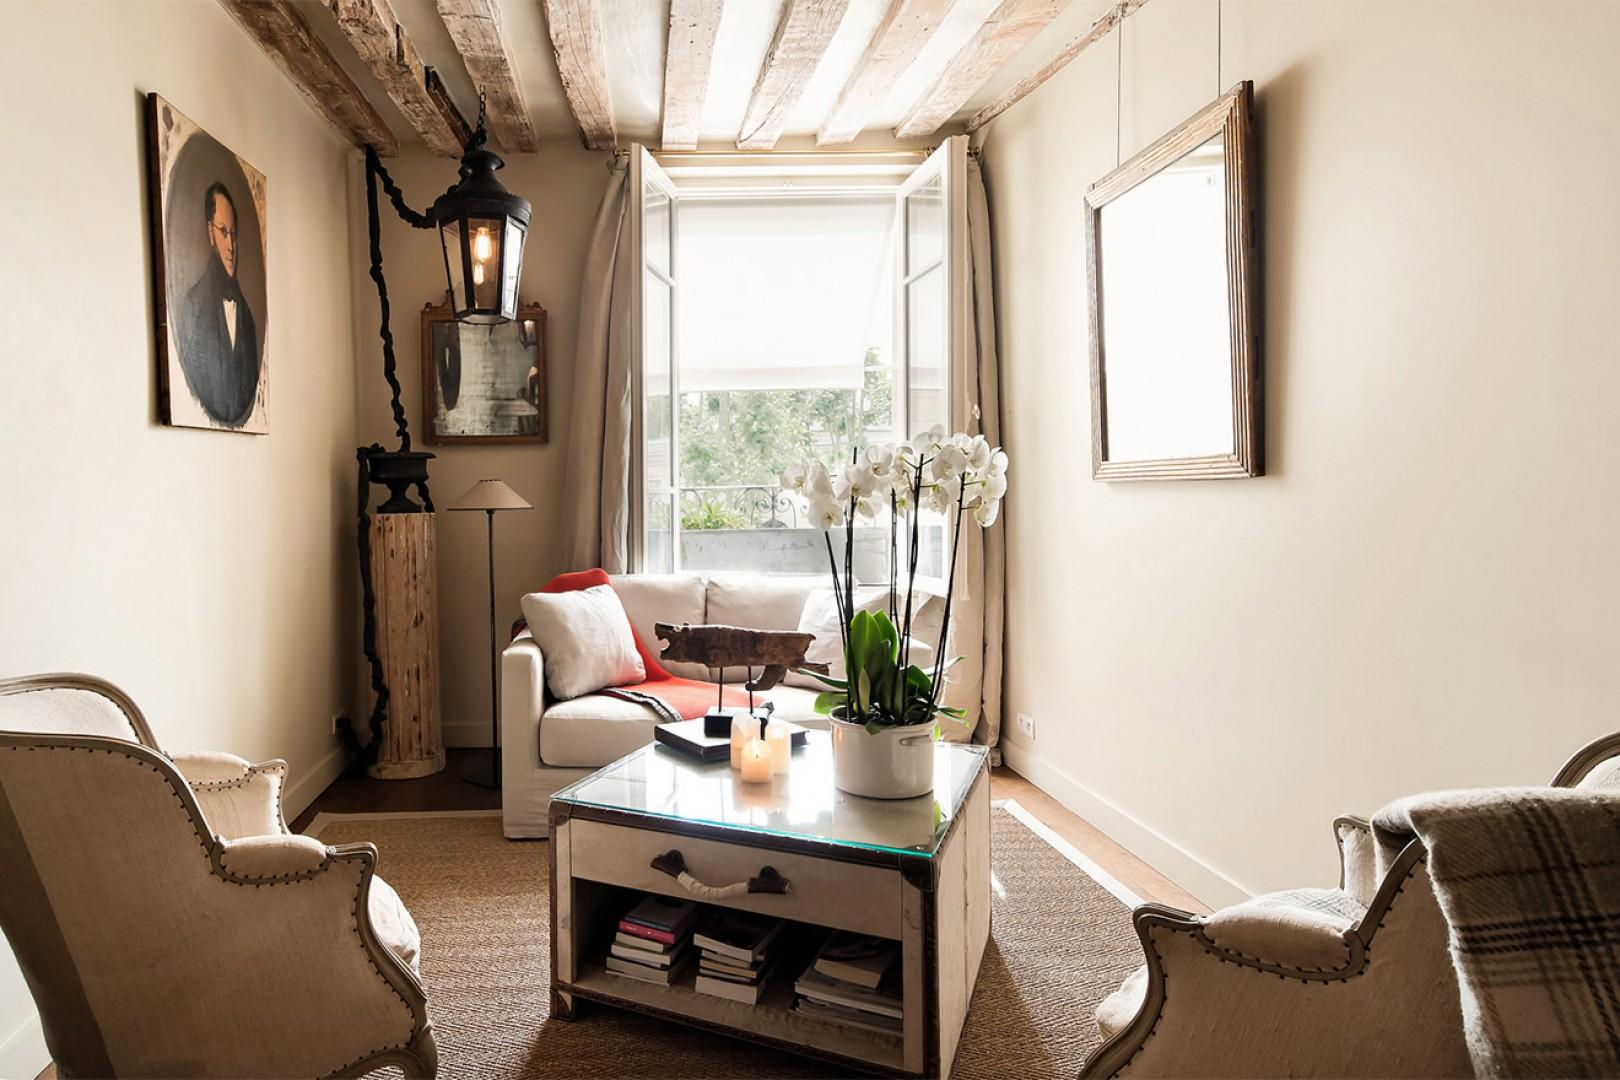 Relax with a book in the cozy seating area.